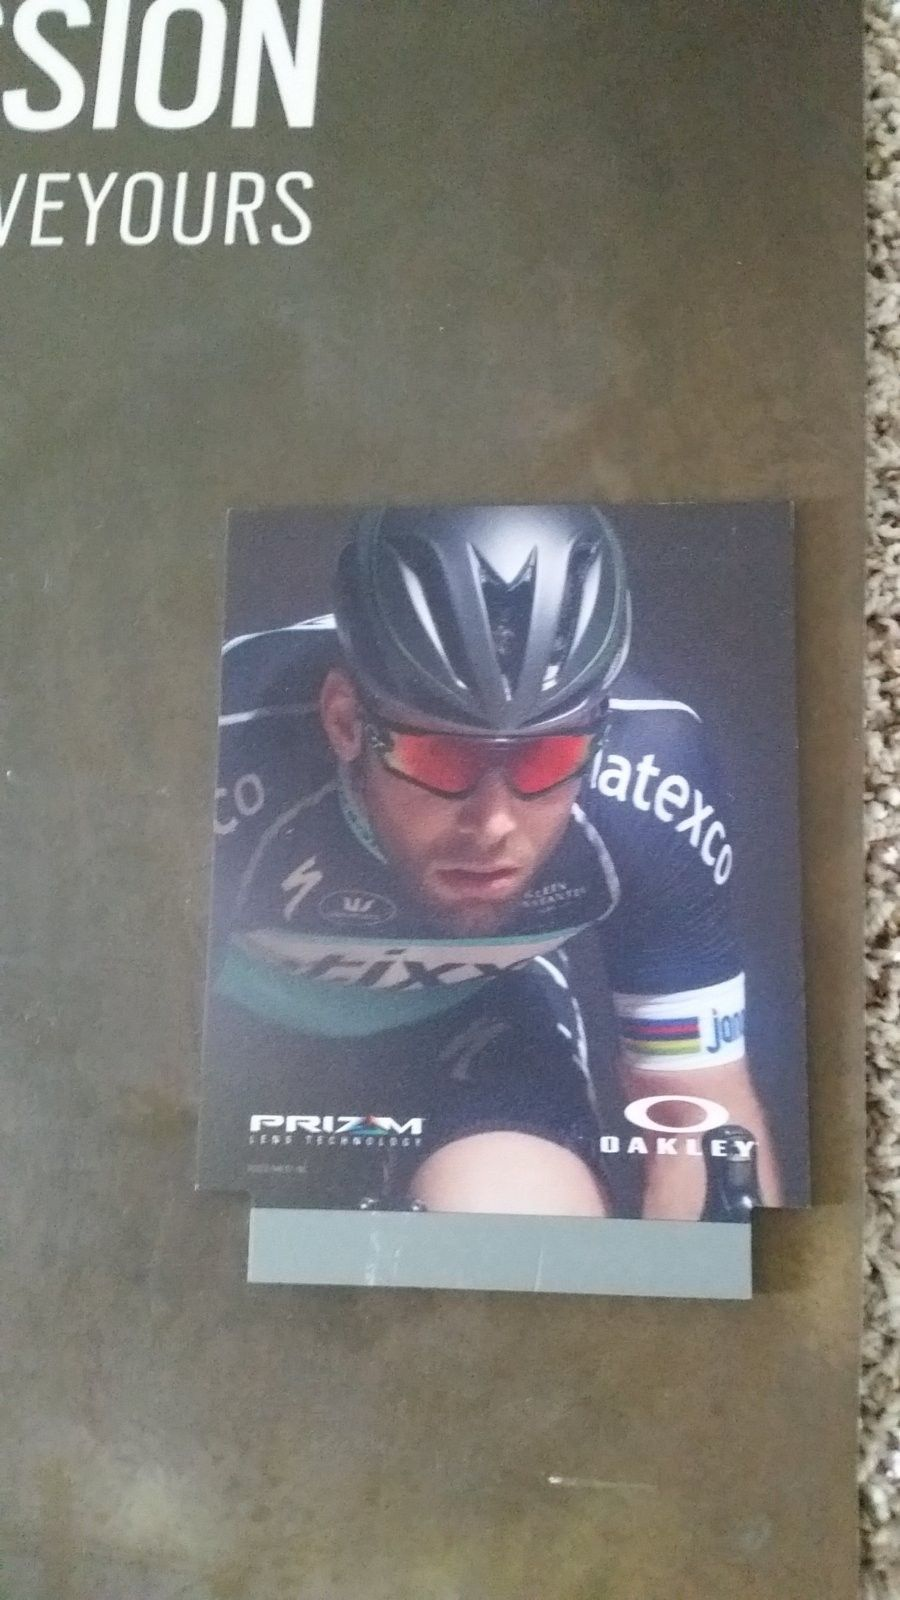 Mark Cavendish poster - 20160807_120459.jpg